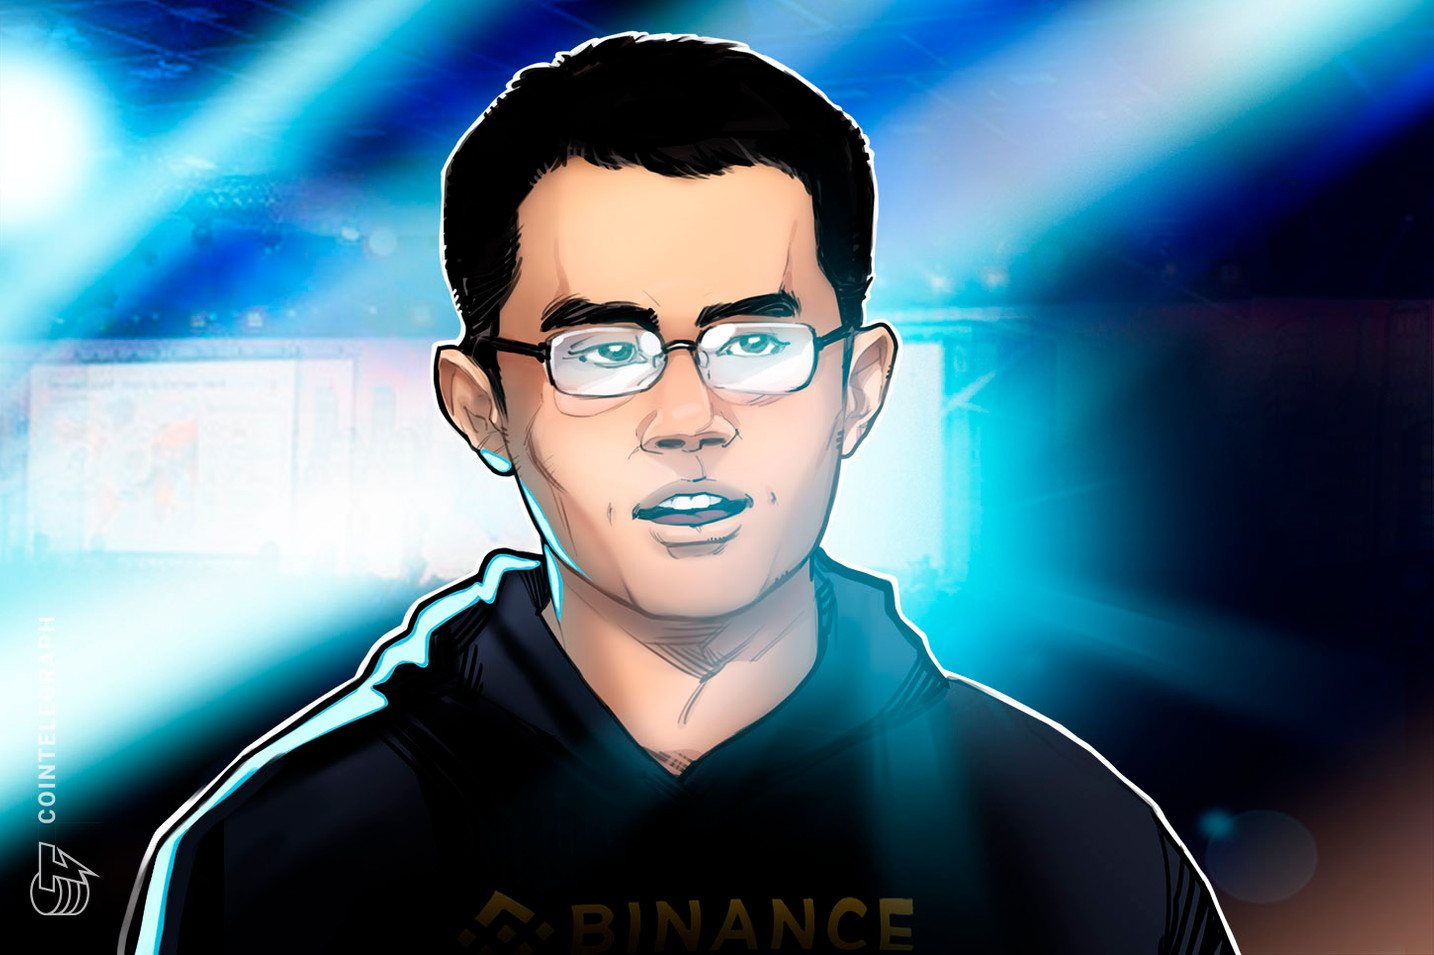 CZ Blames 'Self-Perceived Competitors' for New DDoS Attacks on Binance